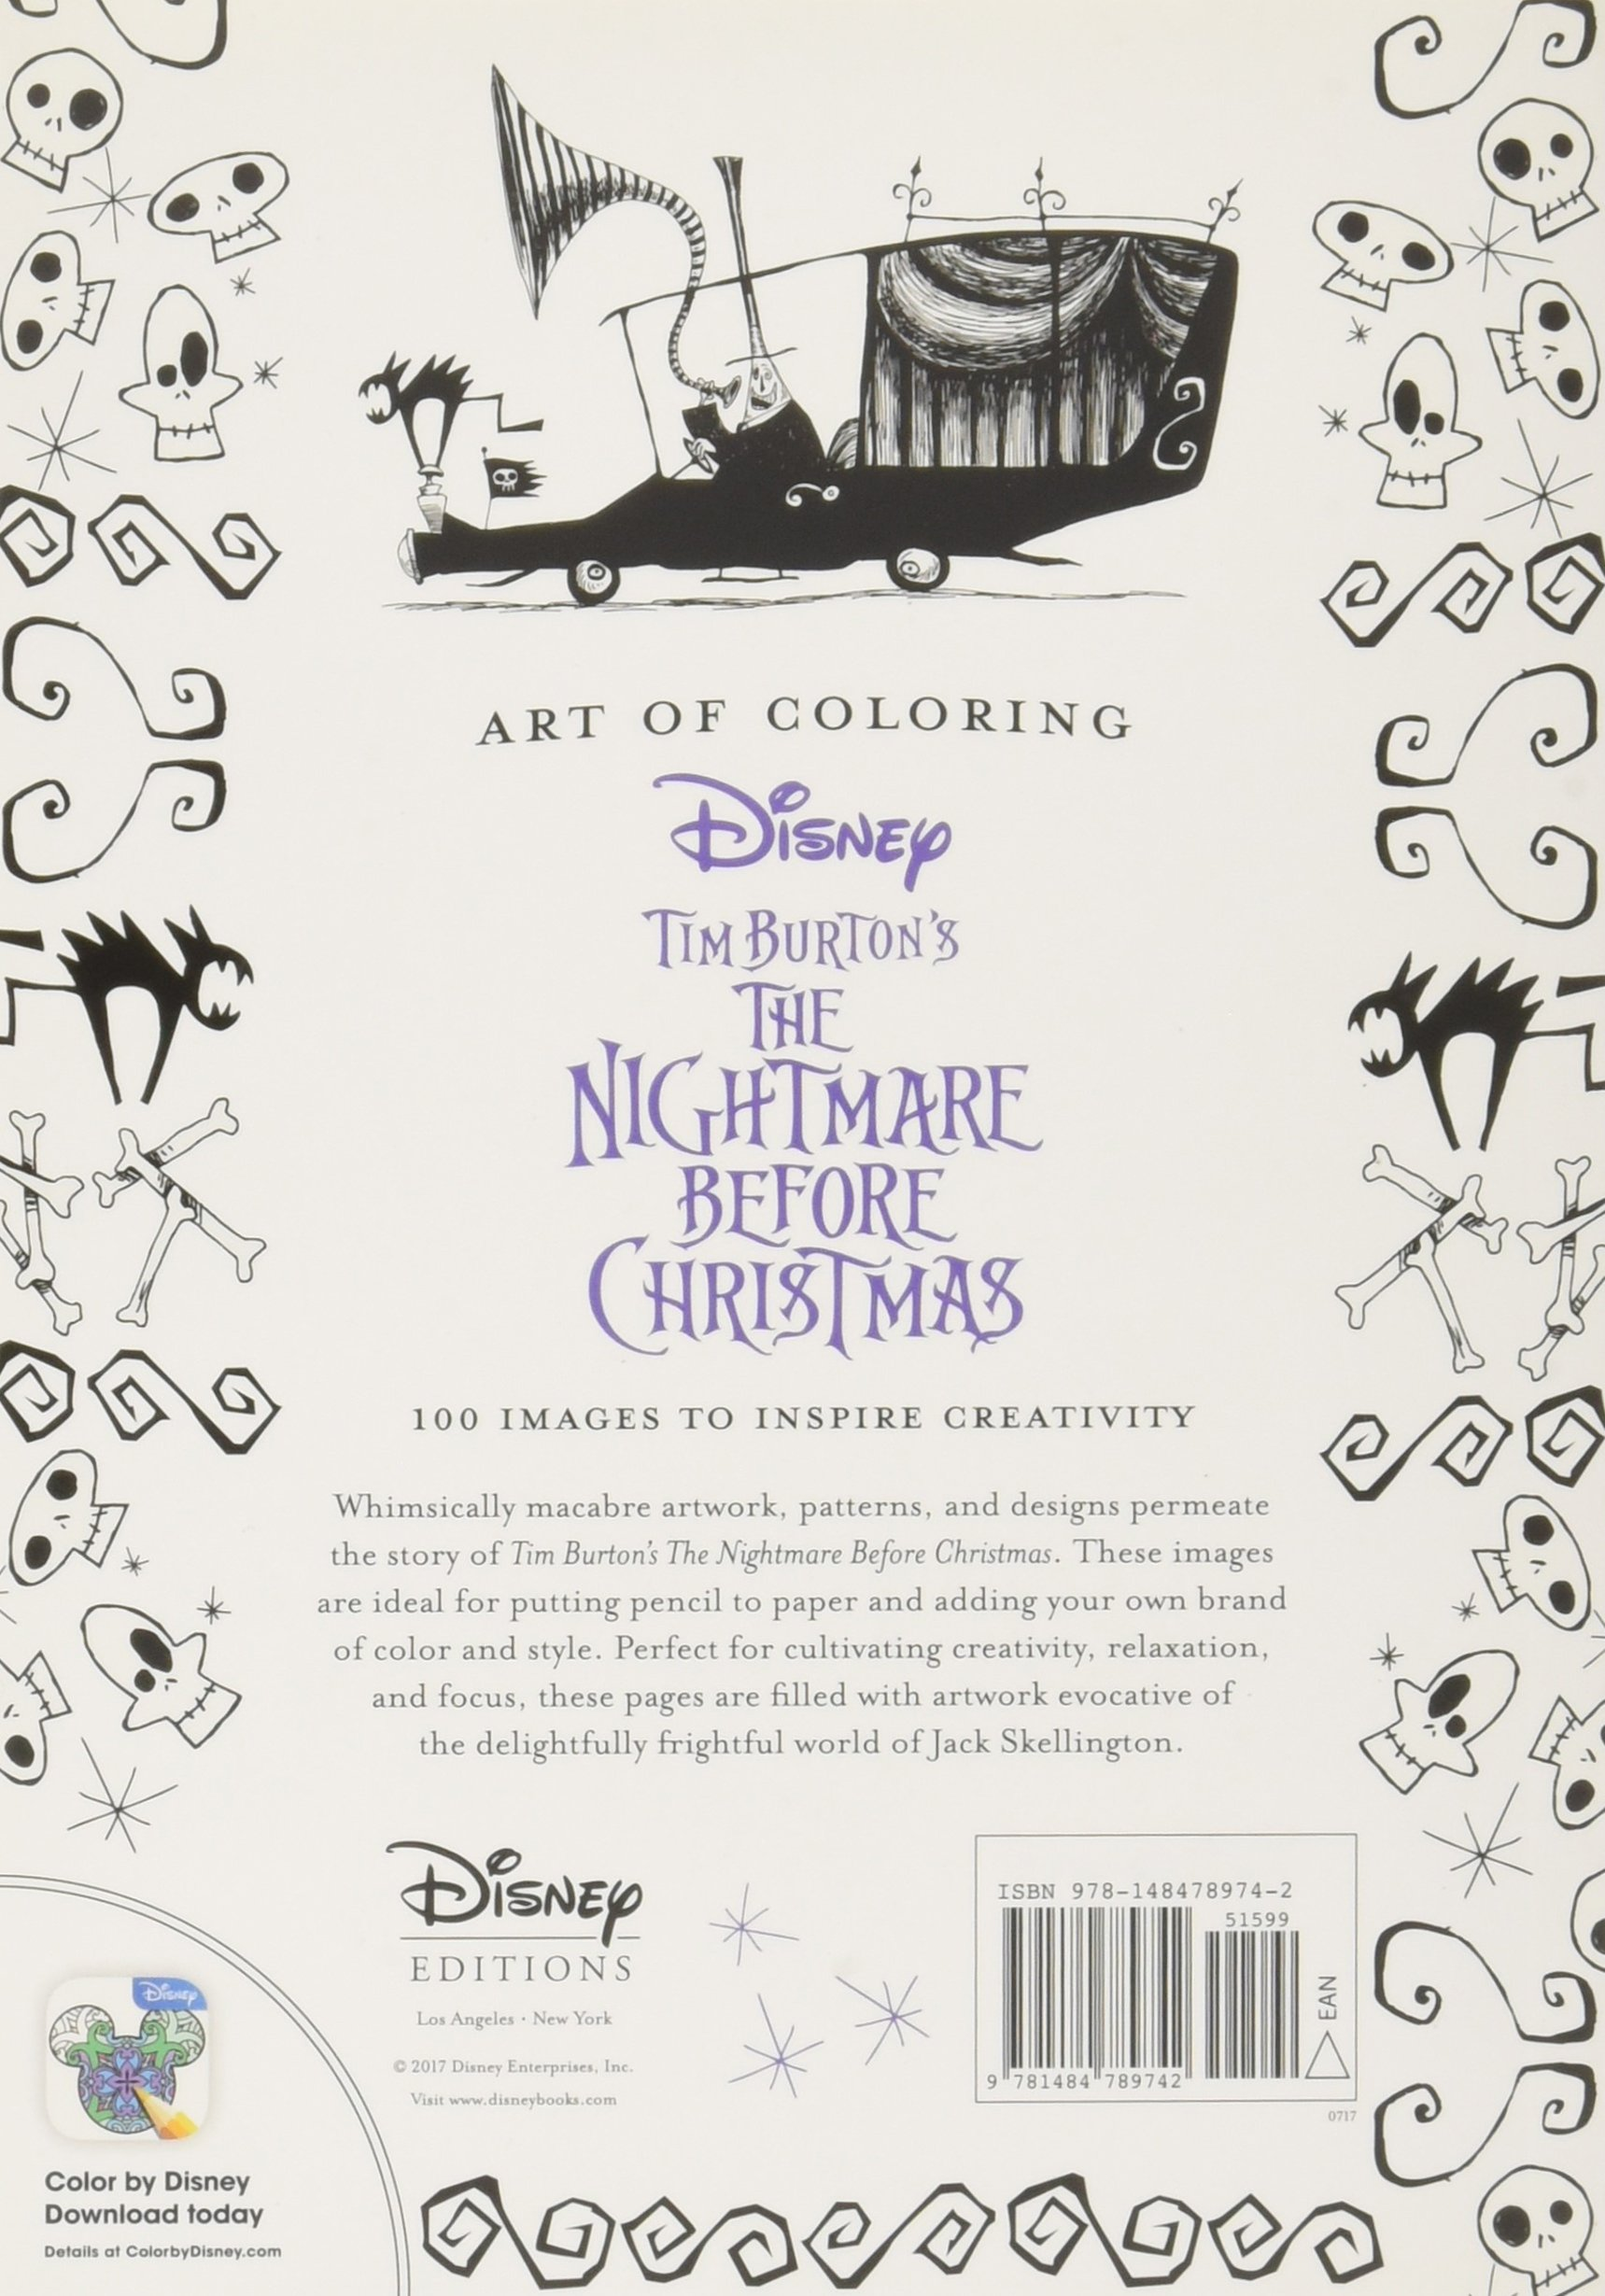 Art Of Coloring Tim Burtons The Nightmare Before Christmas 100 Images To Inspire Creativity DBG 9781484789742 Amazon Books